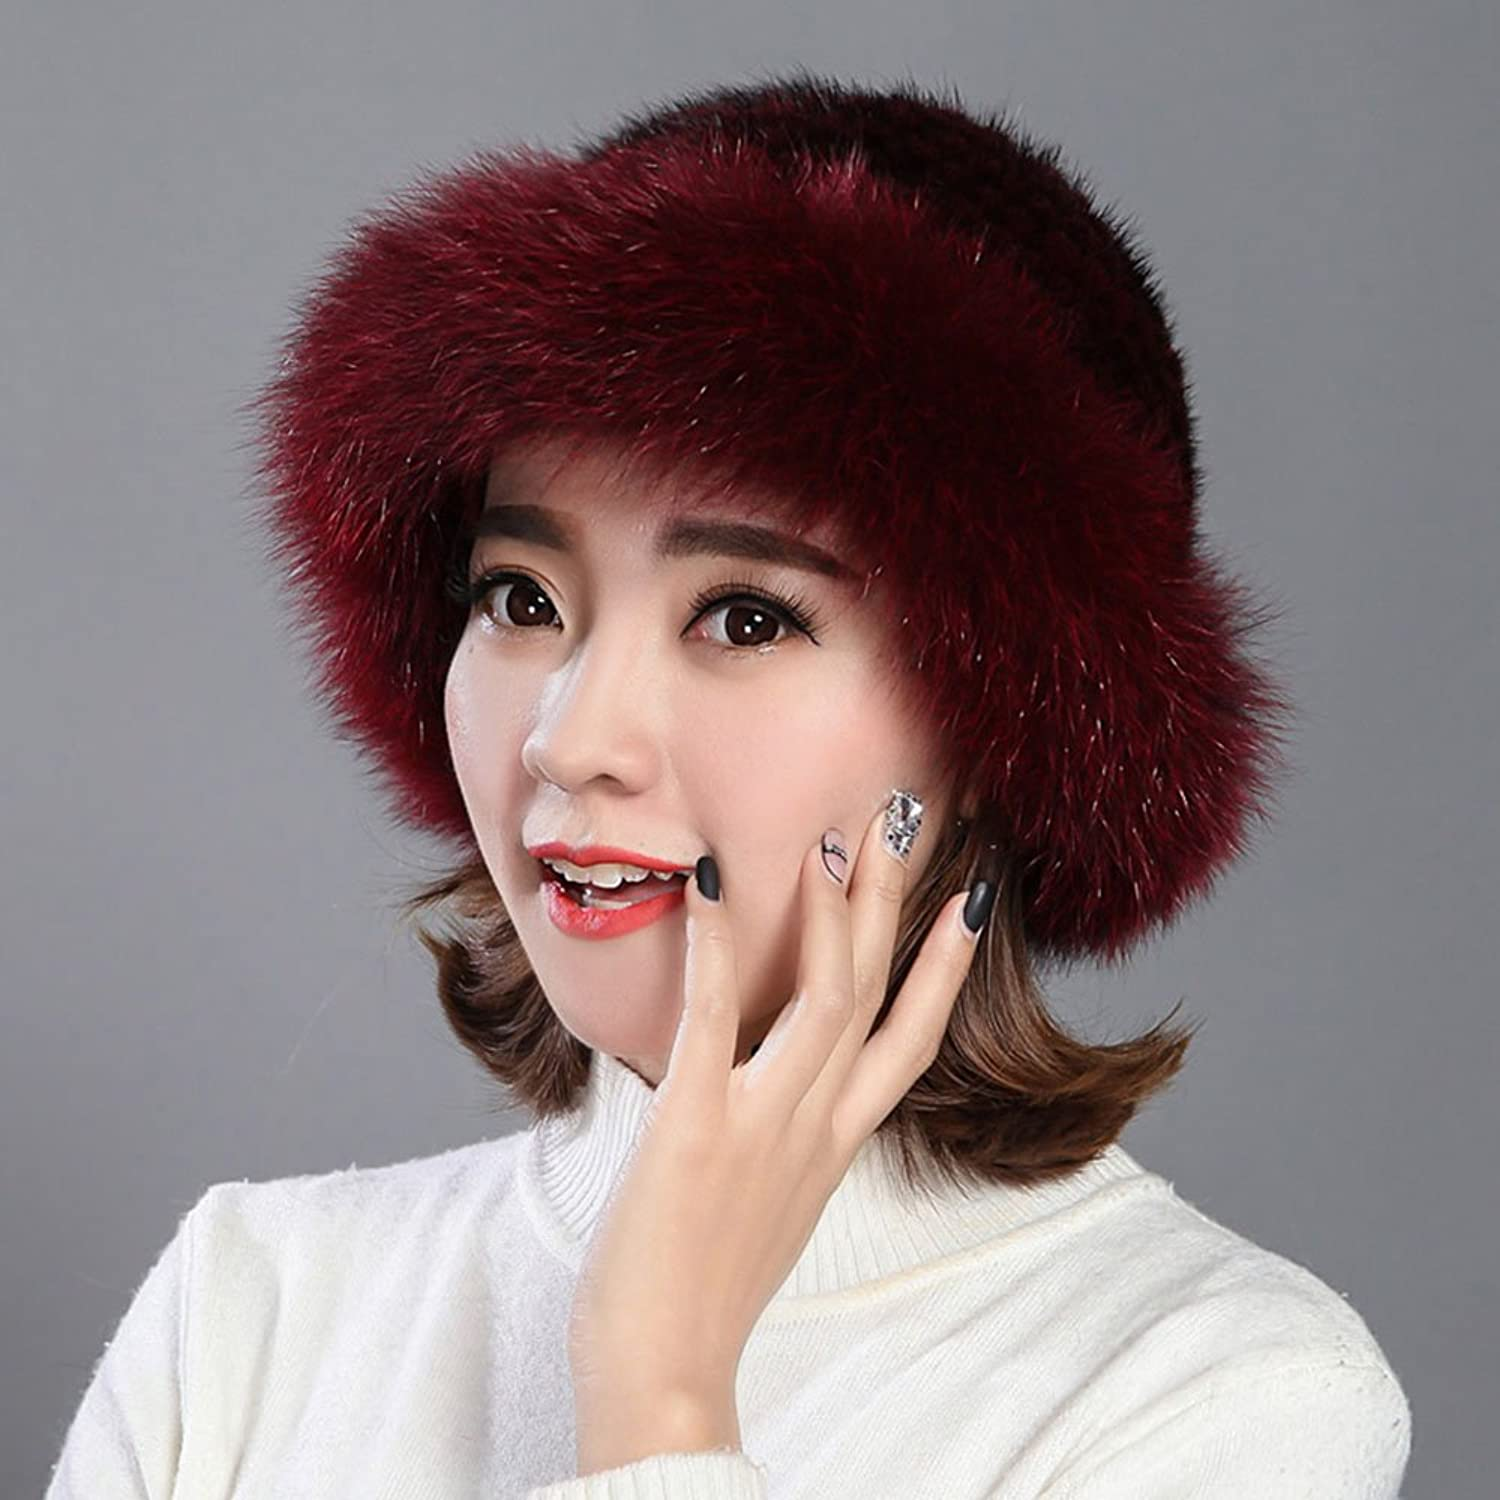 ZHANGRONG- Hat Winter Keep Warm Ms Braided Hat Windproof Cold 6 colors -Winter outdoor warmth (color   Wine red)